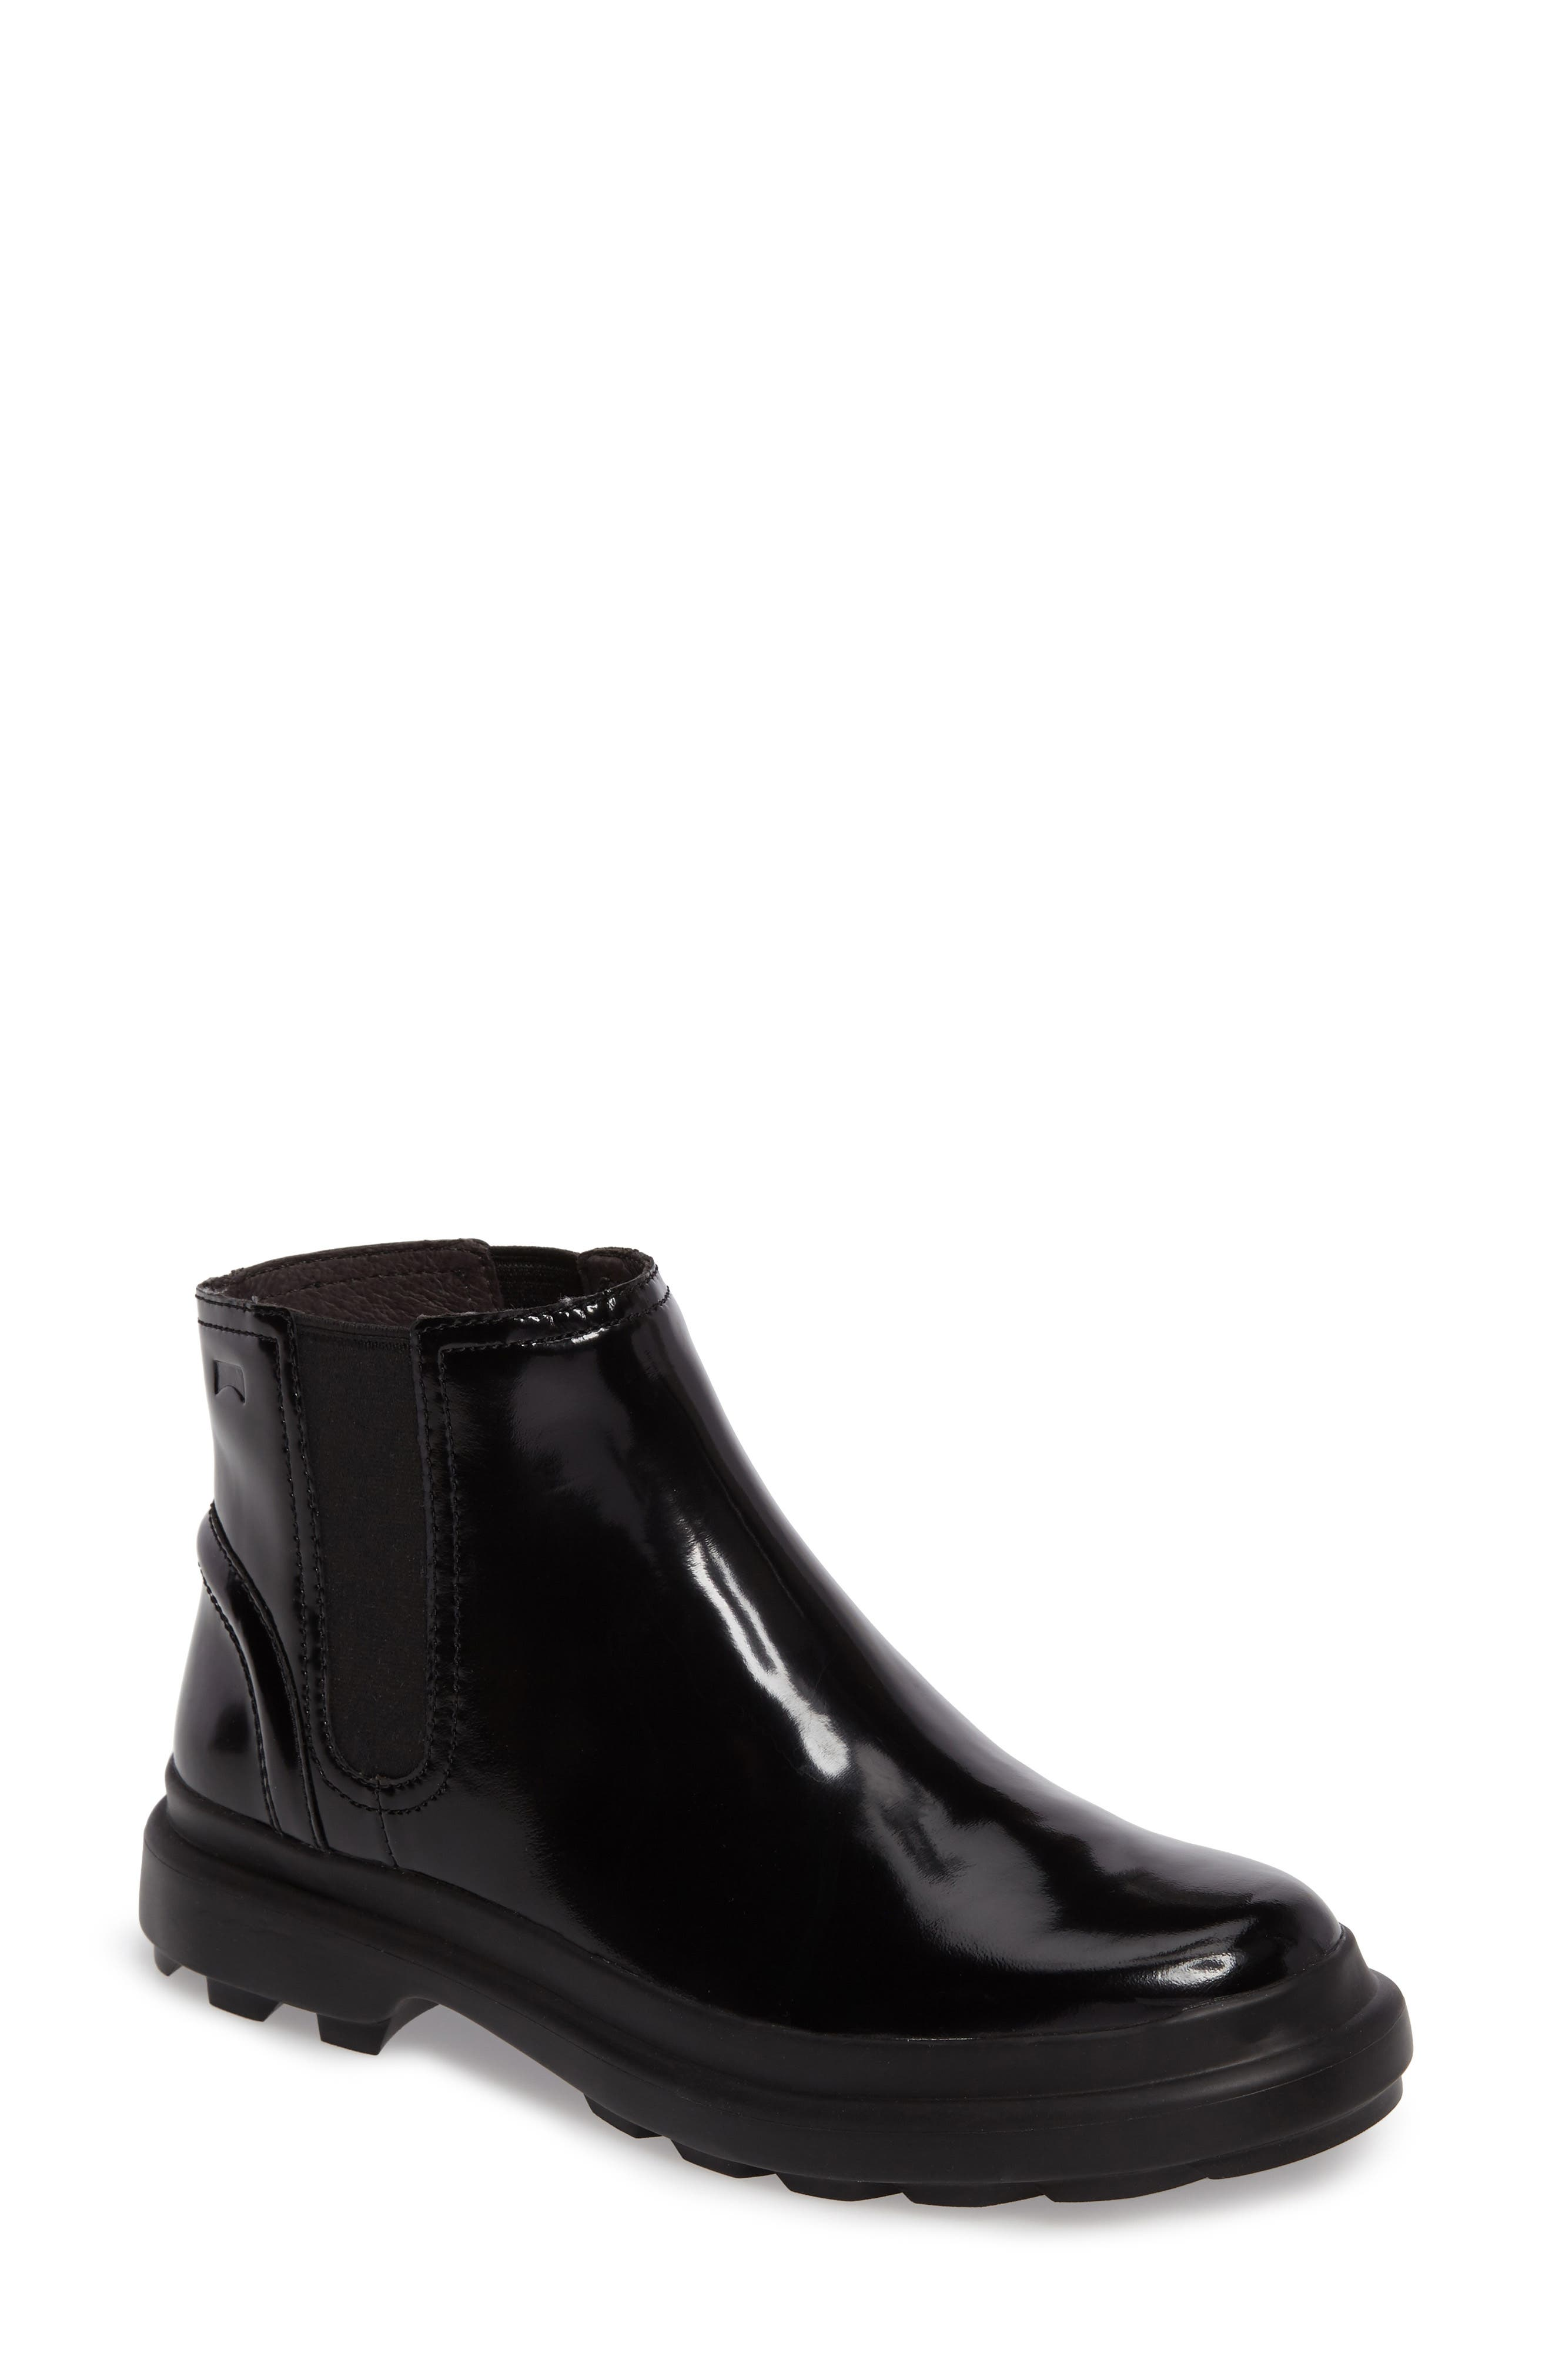 Main Image - Camper Turtle Lugged Chelsea Boot (Women)